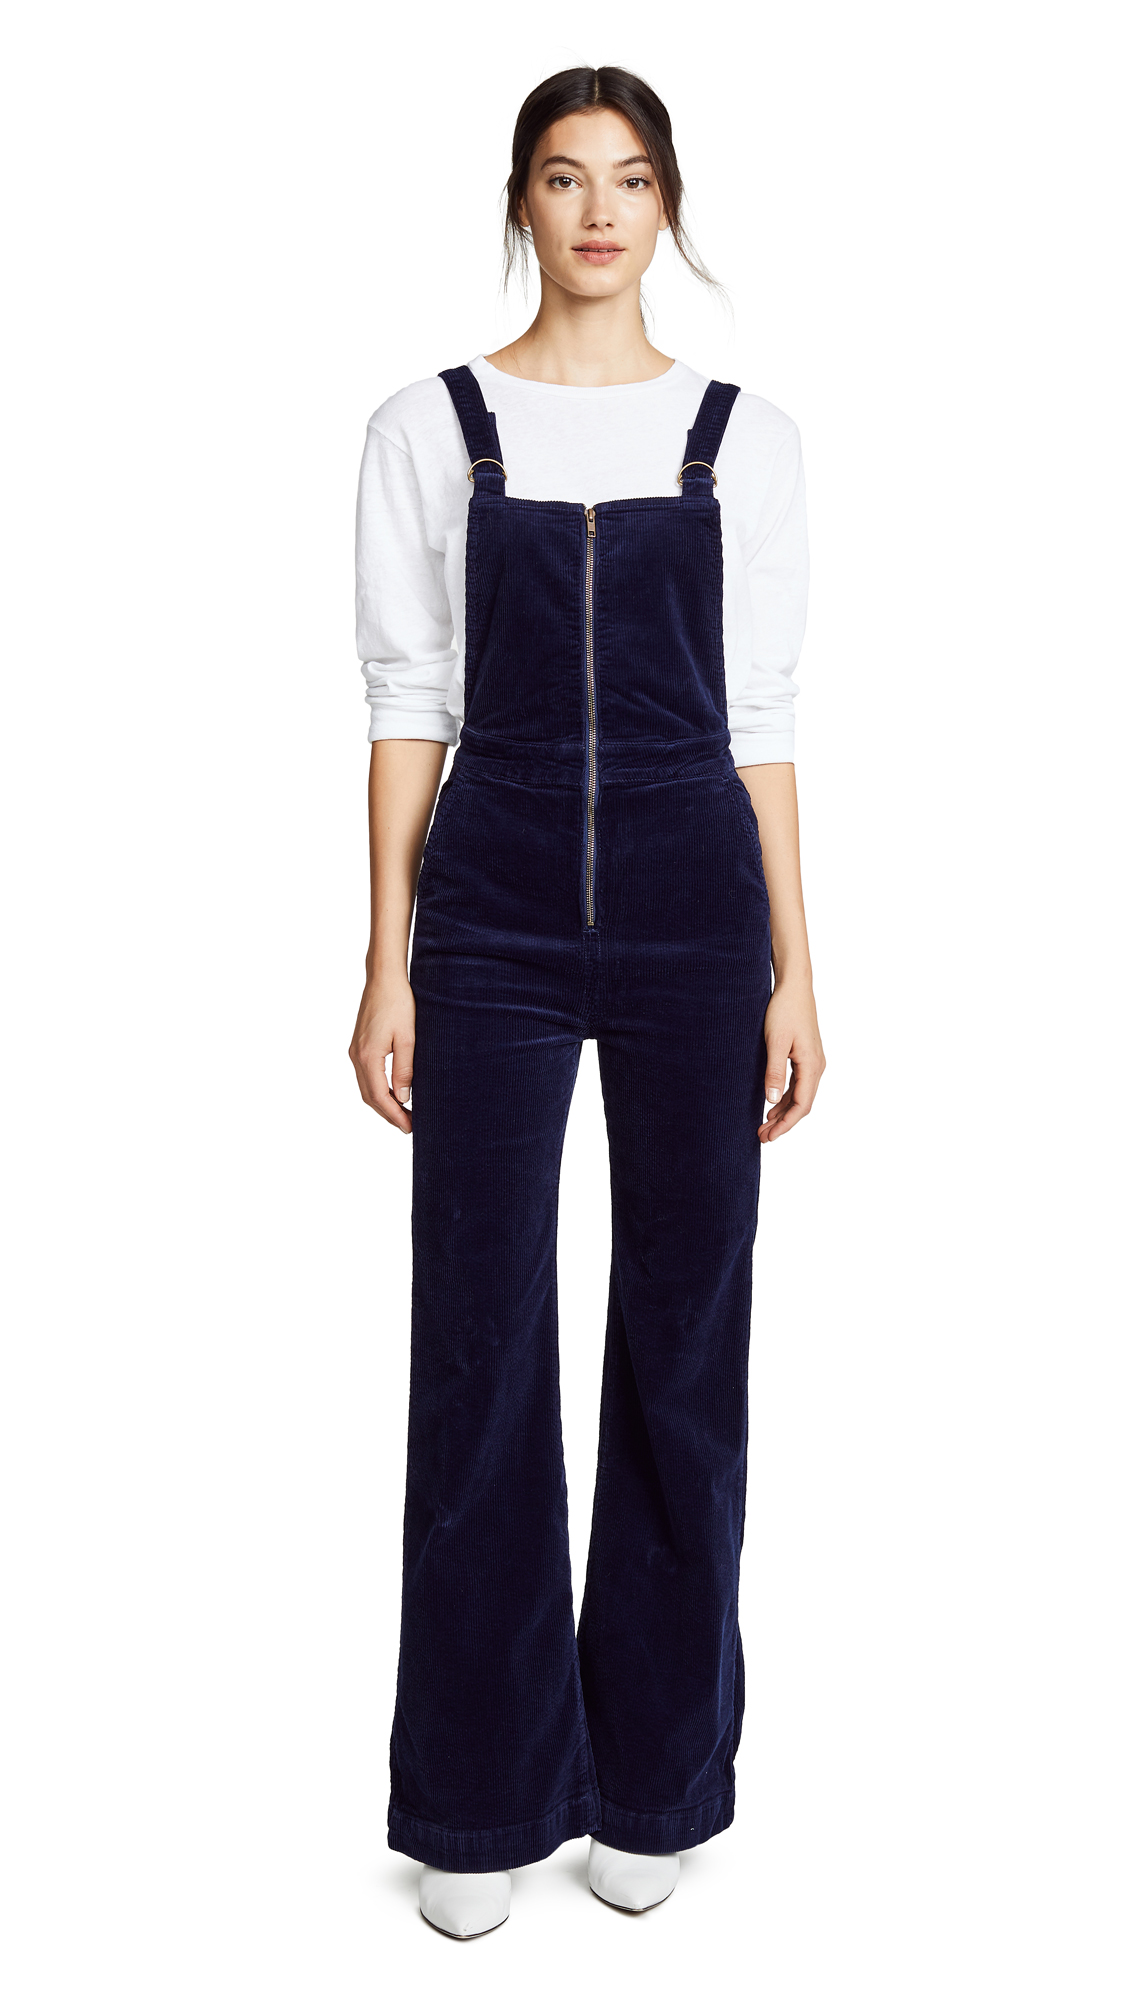 Rolla's East Coast Flare Overalls In Midnight Cord